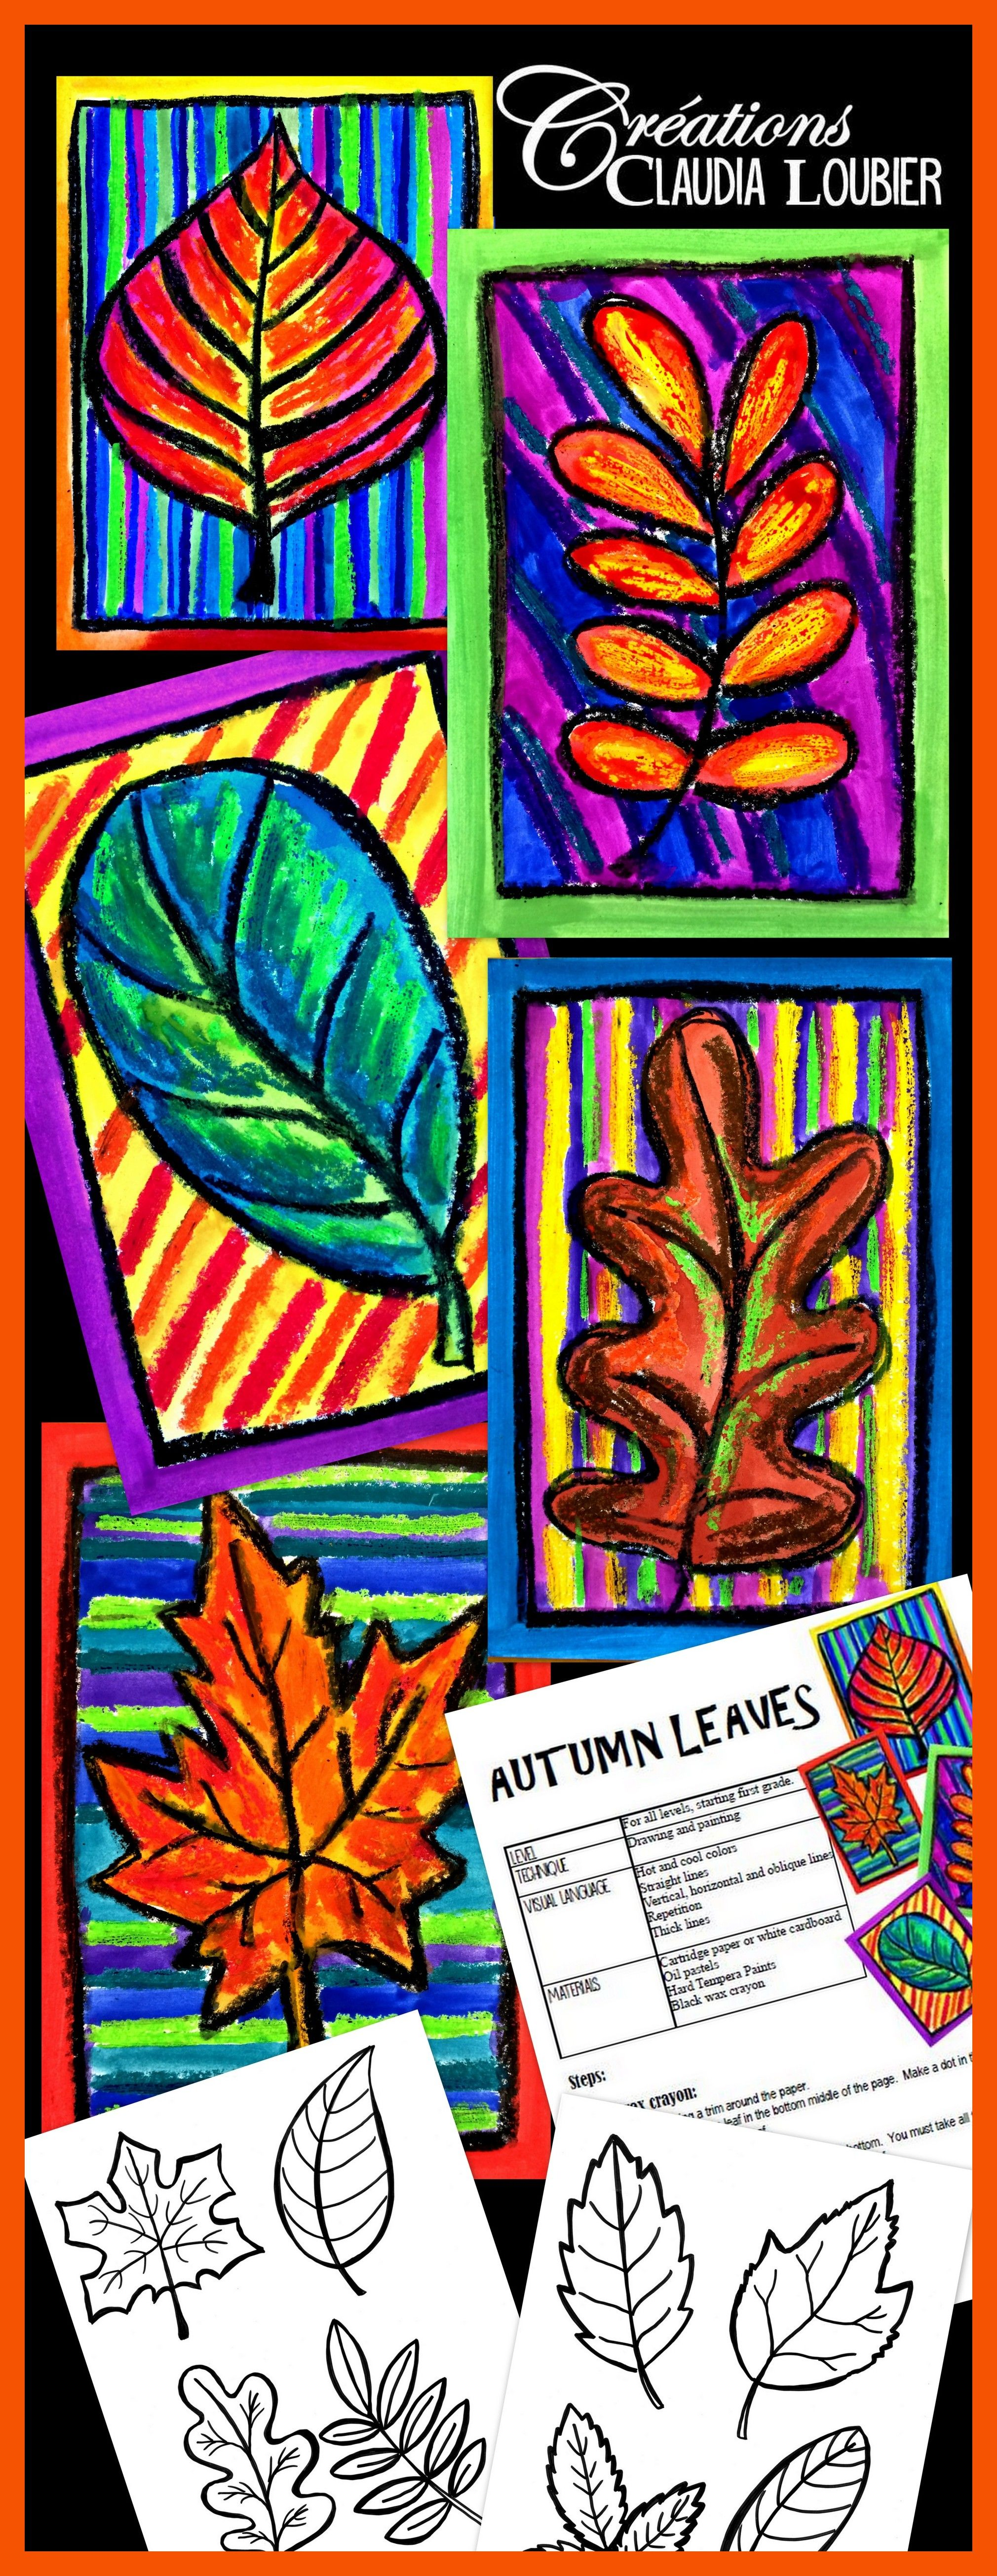 Autumn Art Activity And Lesson Plan For Kids Autumn